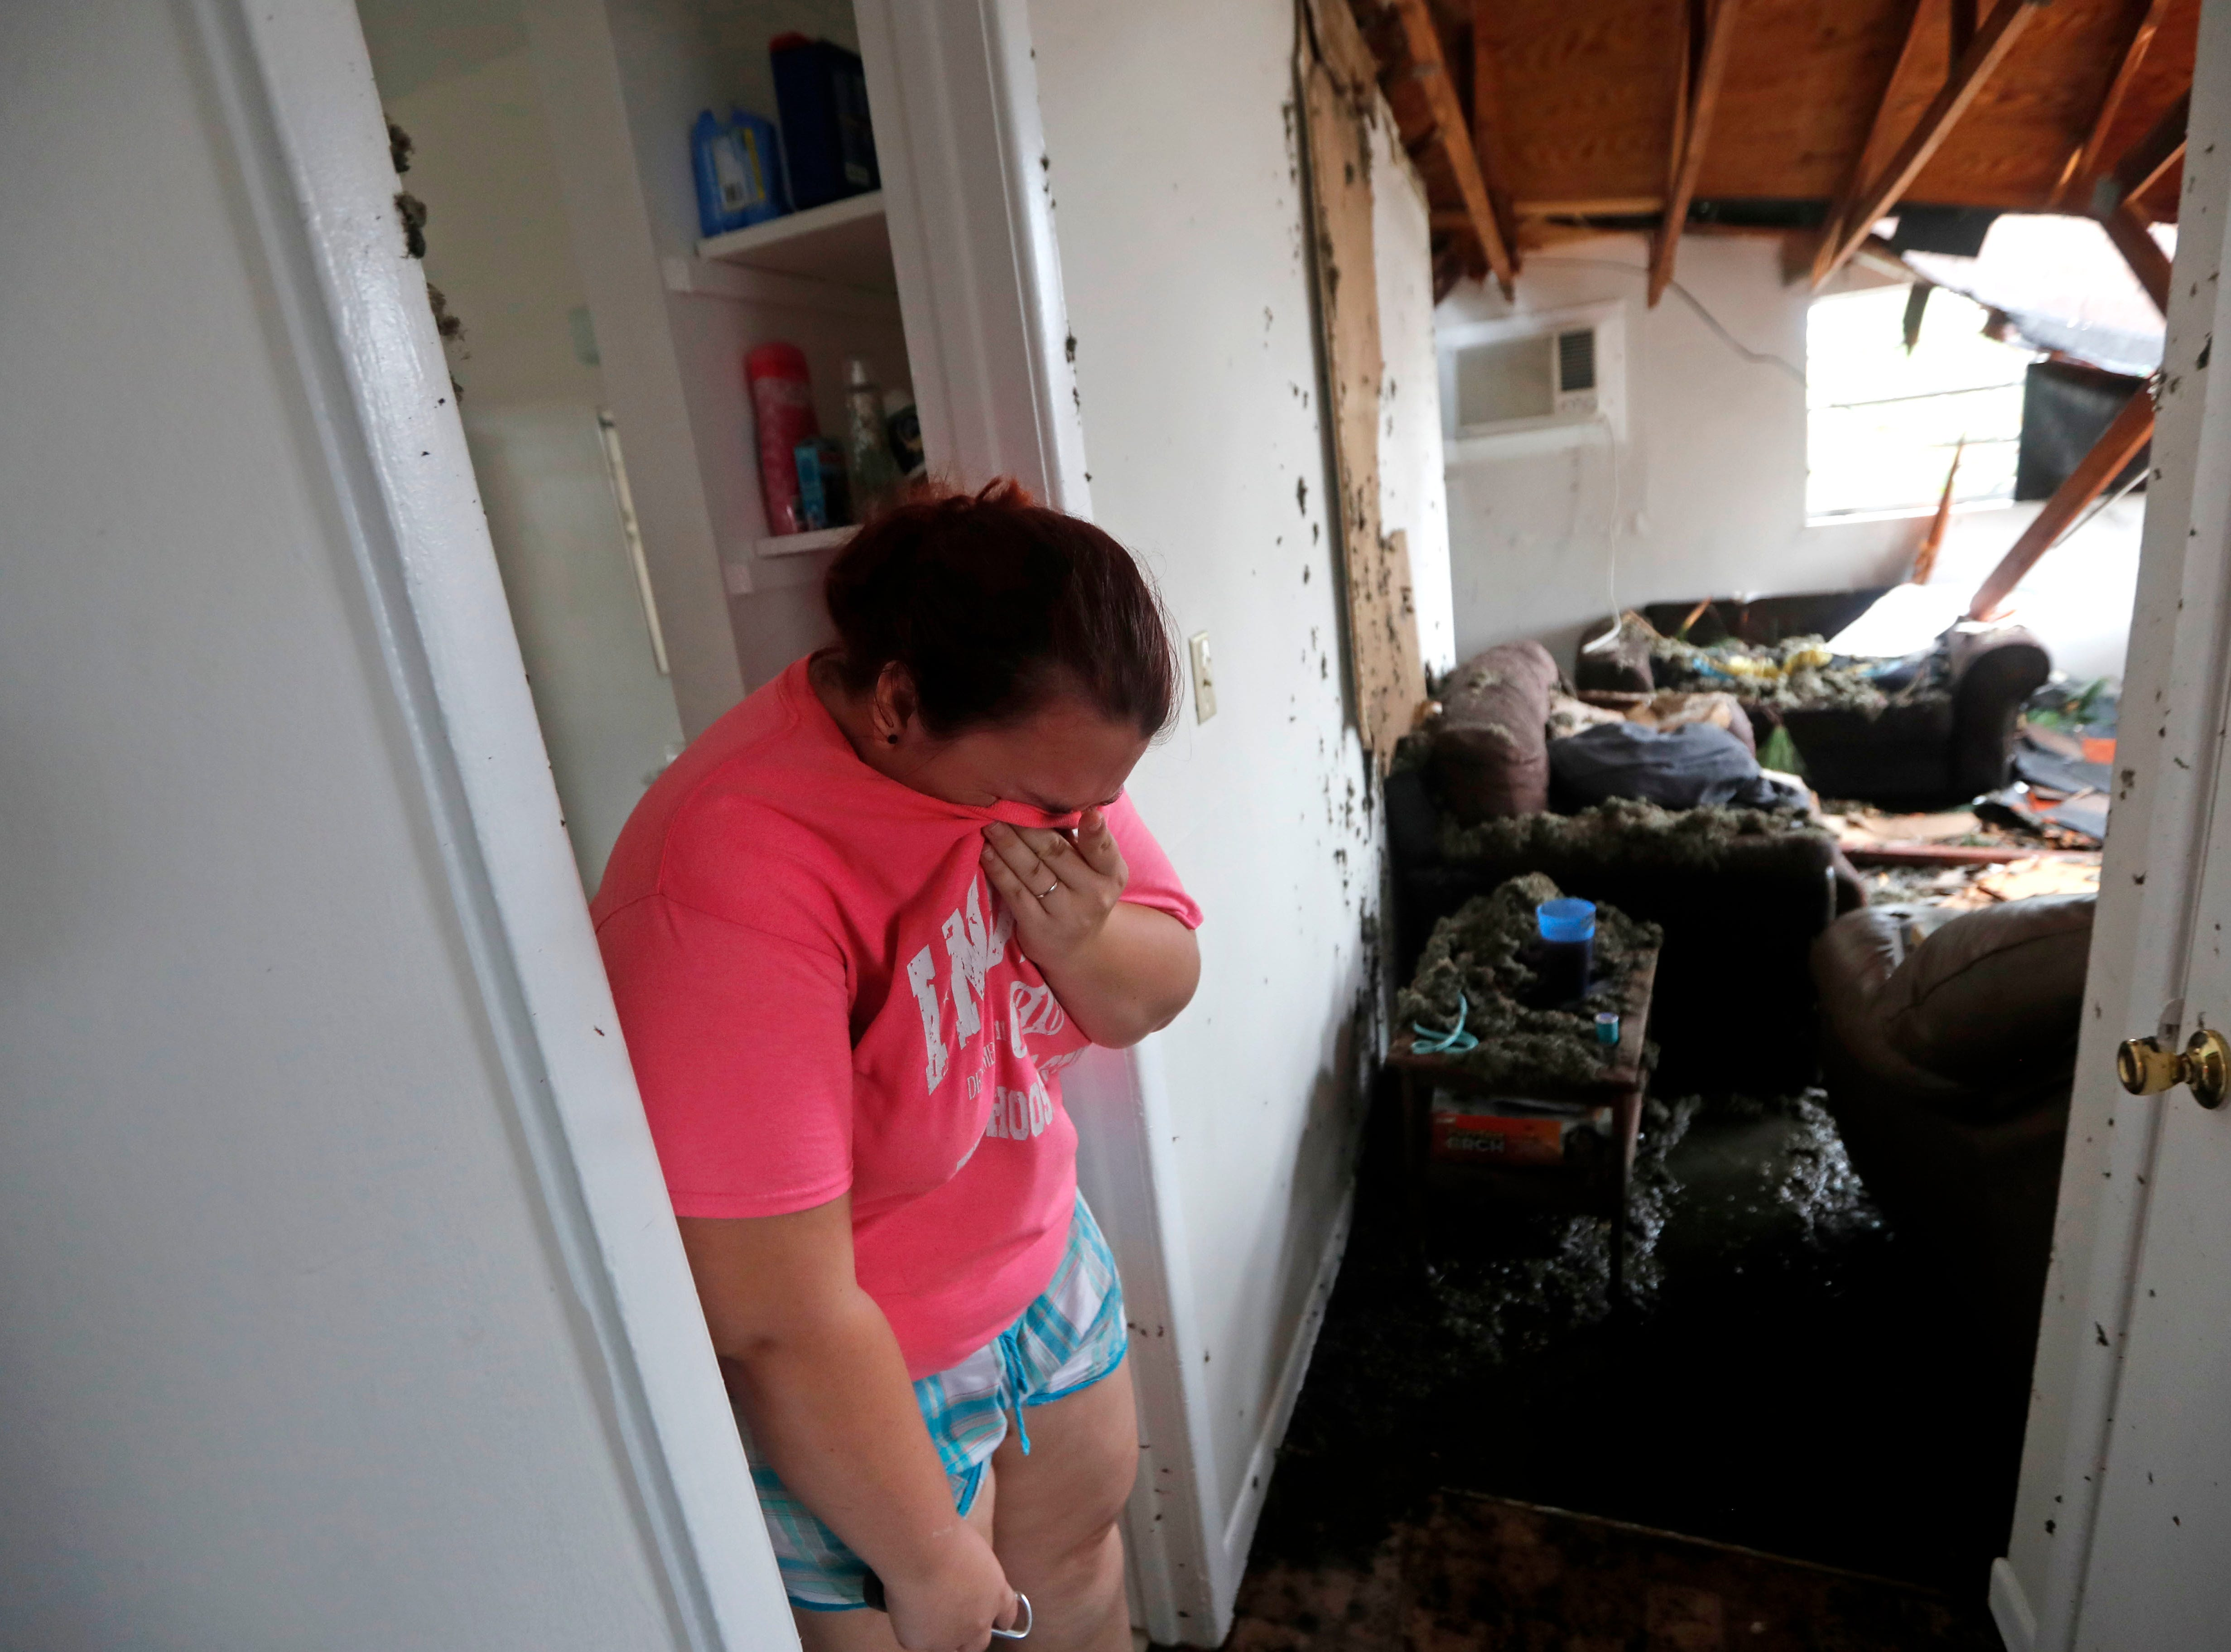 Kaylee O'Brian weeps inside her home after several trees fell on it during Hurricane Michael in Panama City, Fla., Wednesday, Oct. 10, 2018.